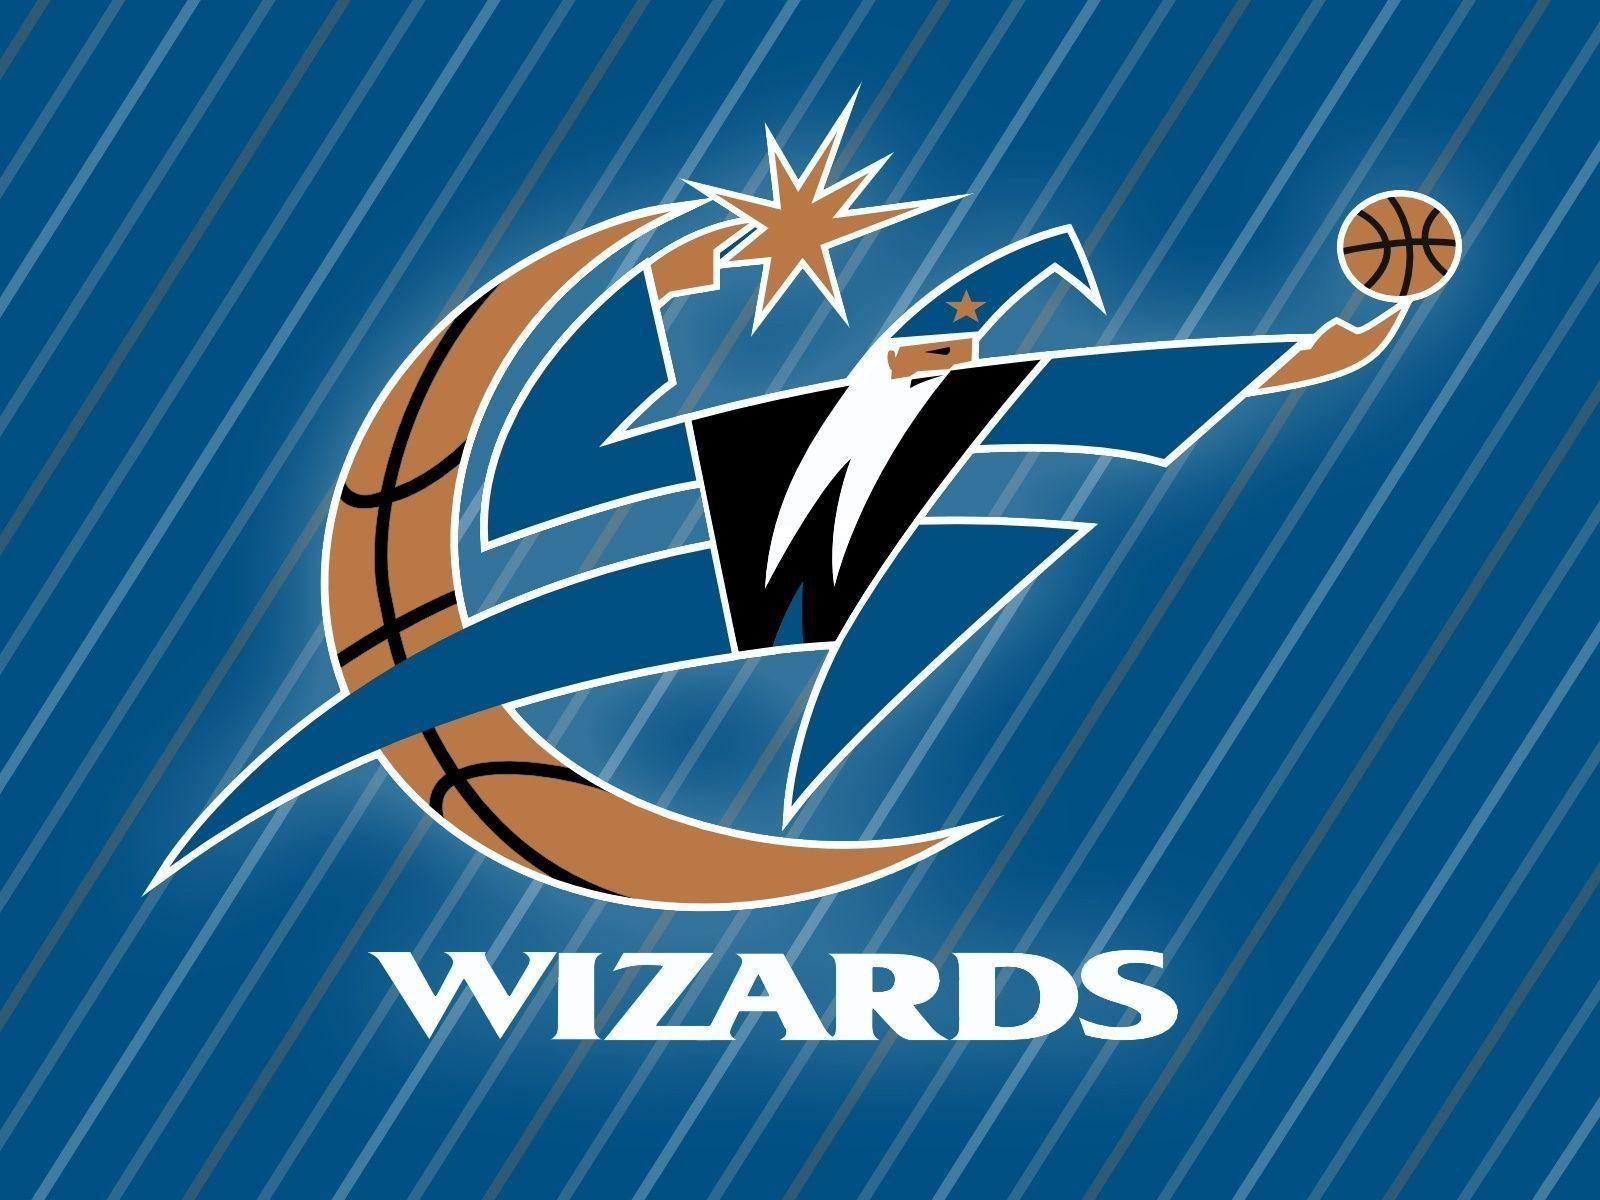 Washington Wizards Wallpaper | 1600x1200 | ID:25834